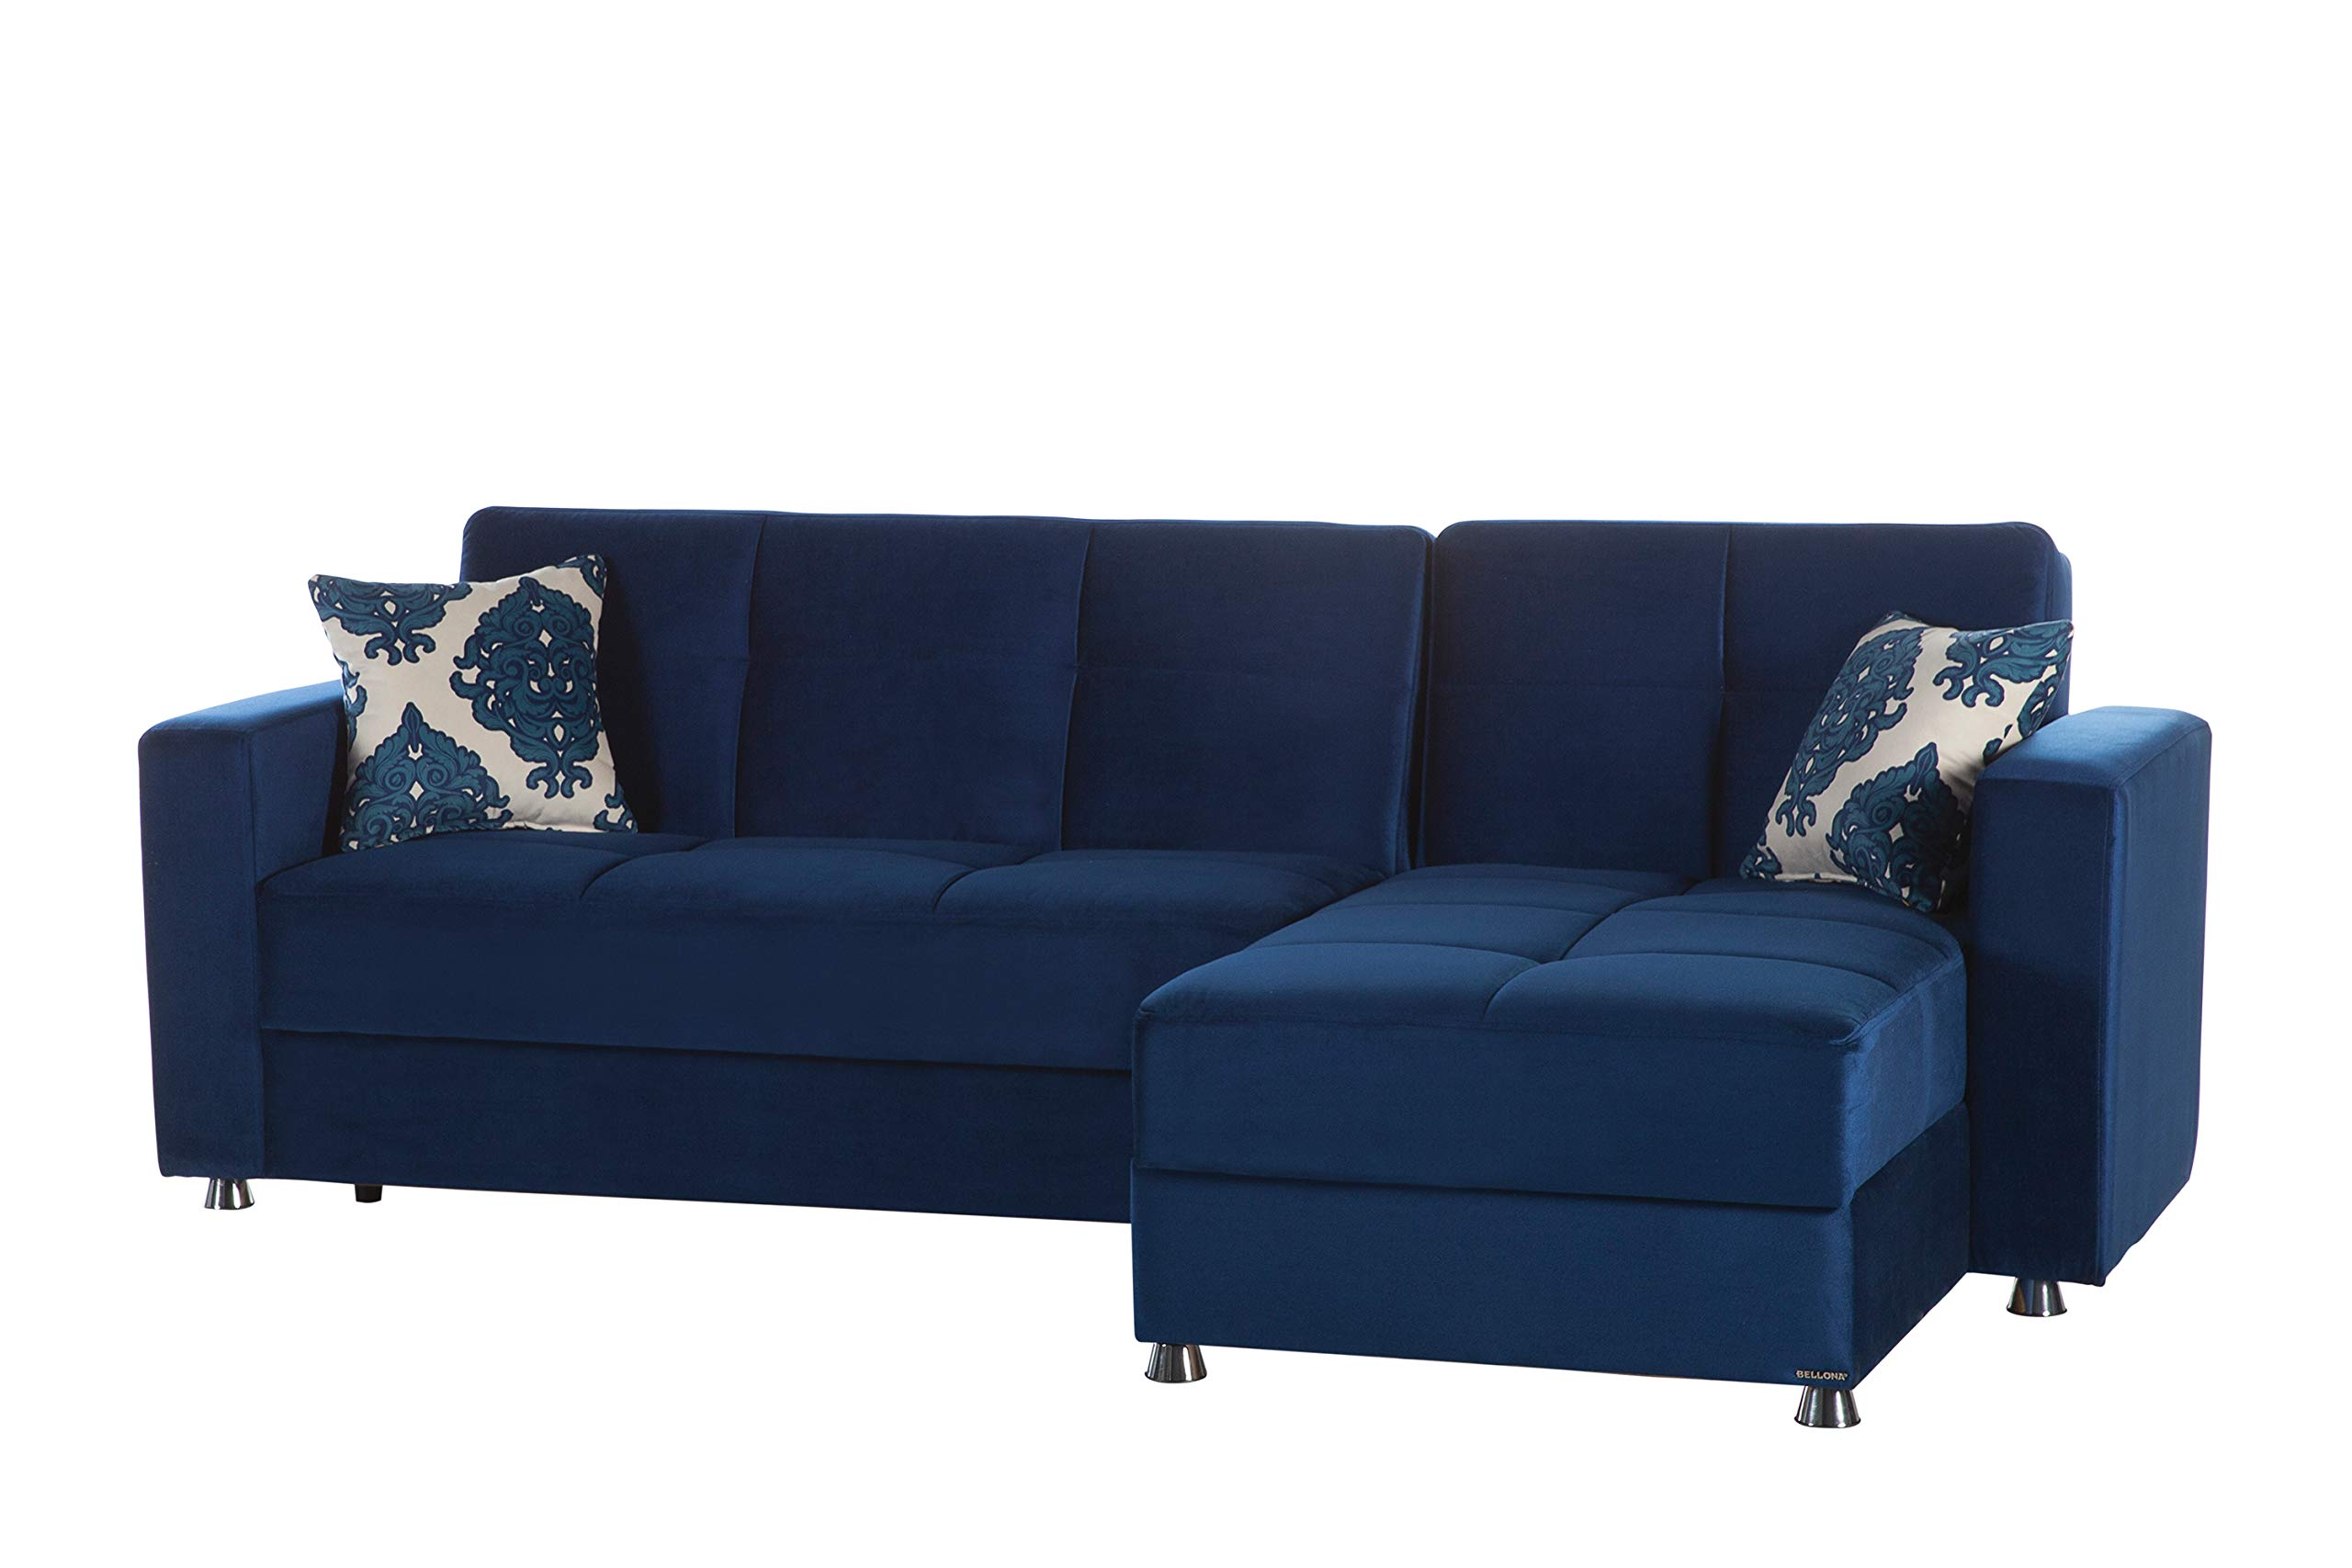 ISTIKBAL Multifunctional Furniture ELEGANT Collection (Sectional Sofa) ROMA NAVY -  - sofas-couches, living-room-furniture, living-room - 71yCaDFPpNL -